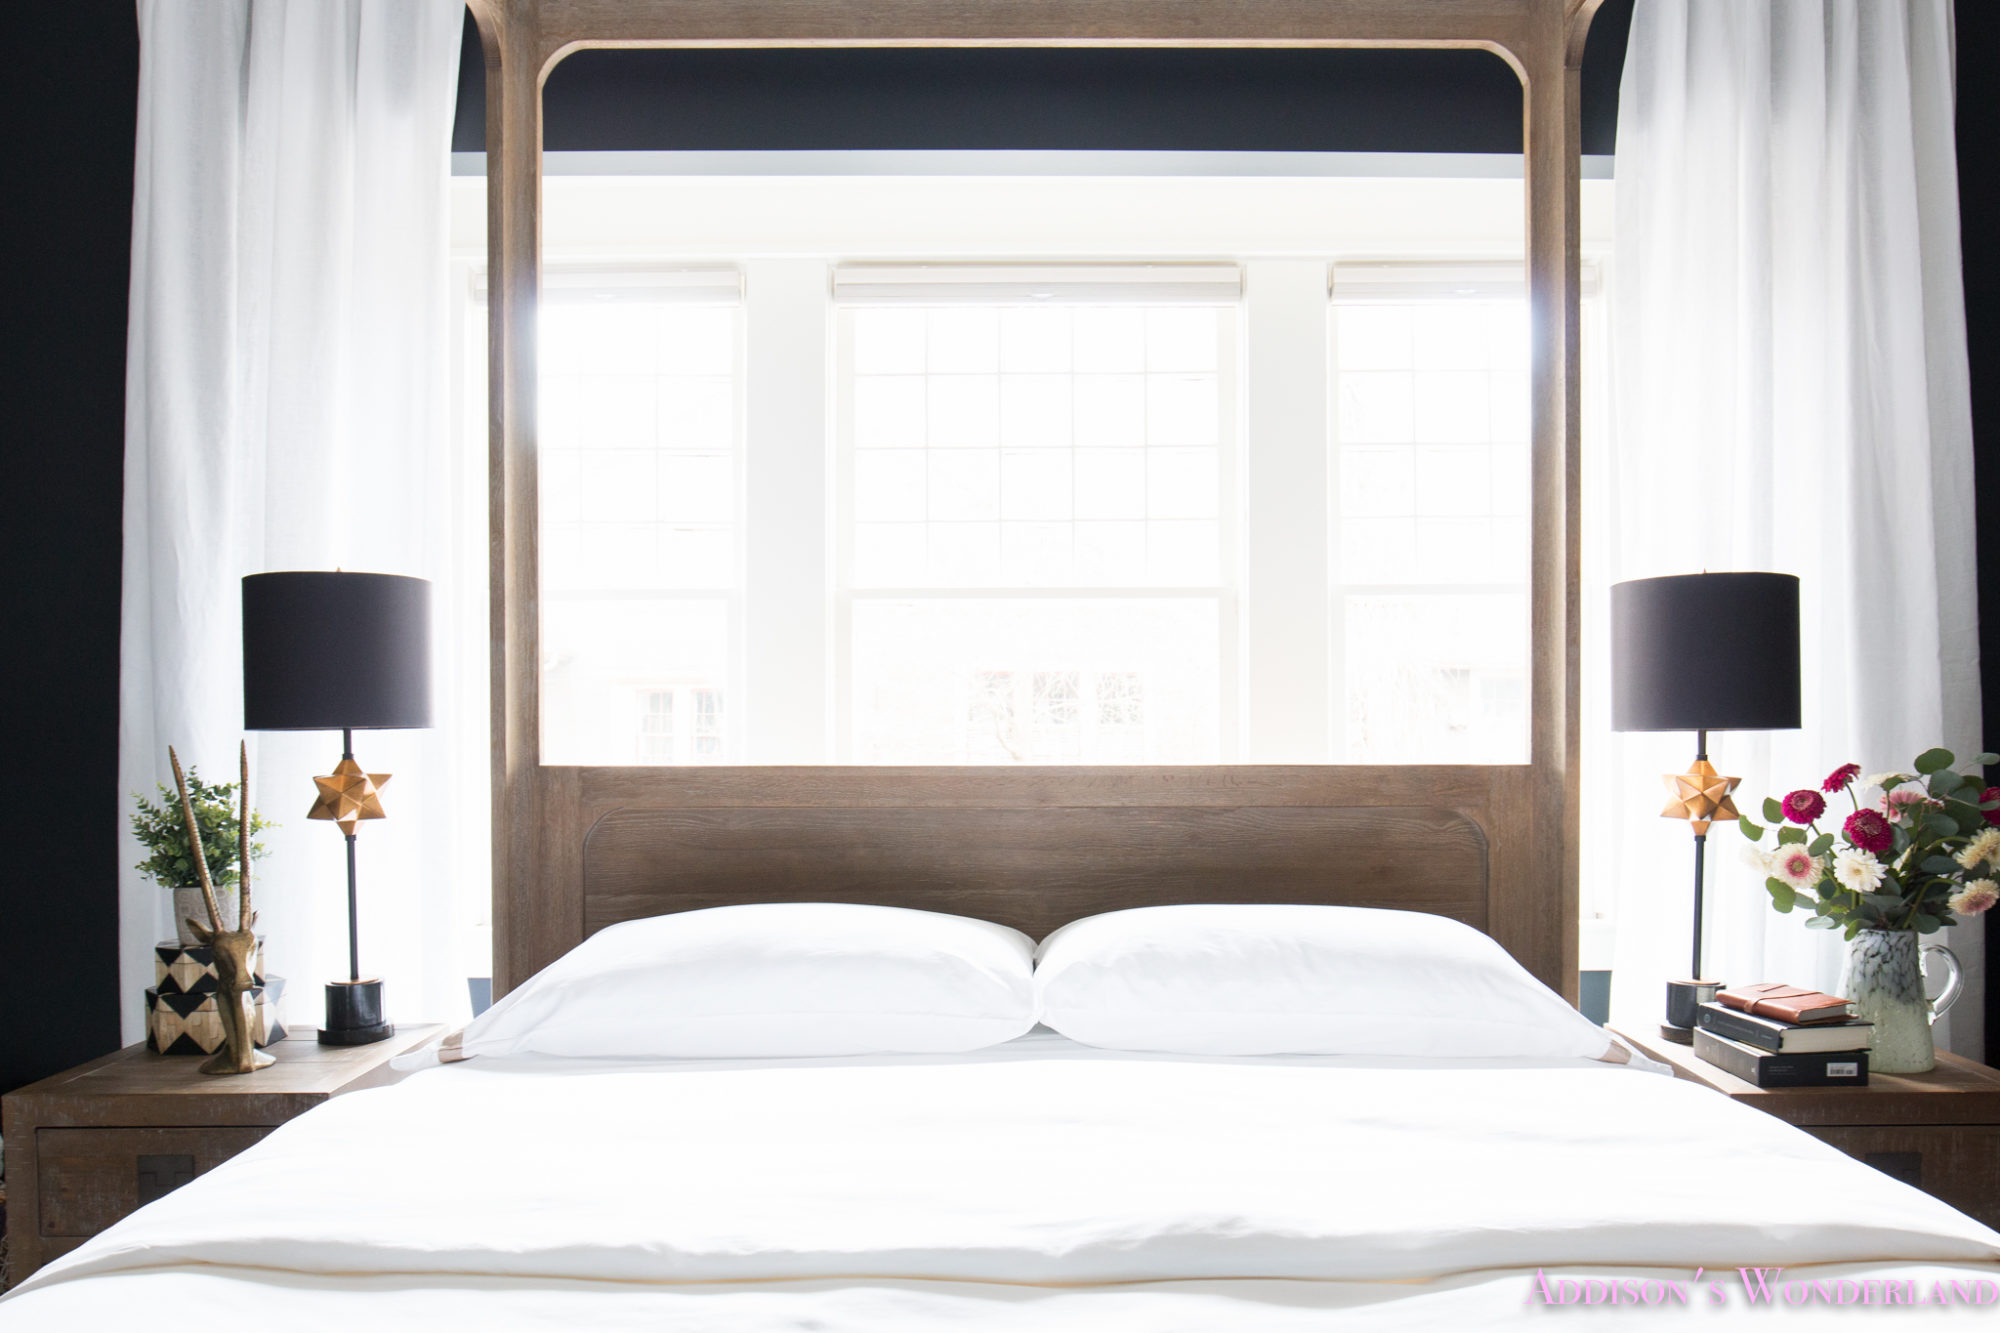 All Black Bedroom Our Black Master Bedroom Update With All White Bedding By